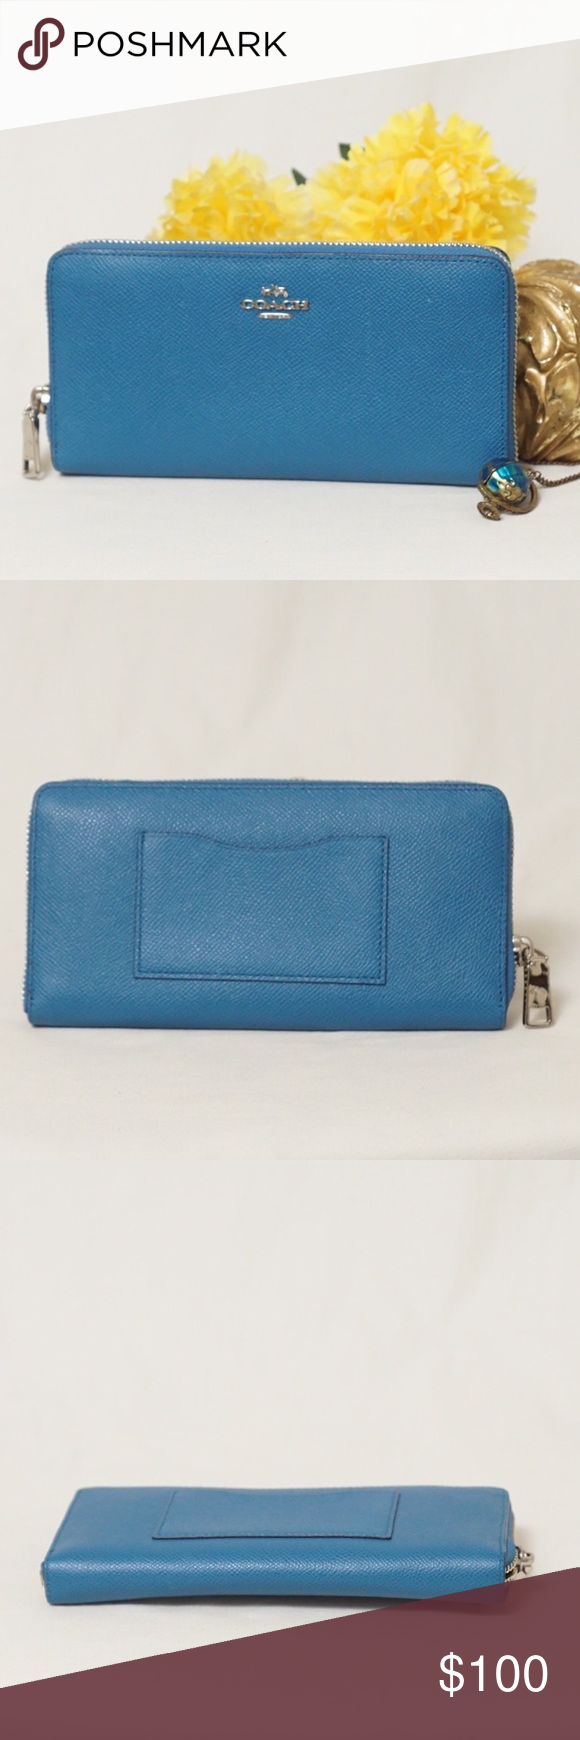 """EUC COACH ZIP AROUND ACCORDION WALLET CLUTCH Adorable Color!! Beautiful style. Preloved in excellent condition both exterior and interior. Like new. Size 7,5""""x4"""". Pet smoke free home.  AUTHENTIC❣️LEATHER ❣️FAST SHIPPING!❣️MAKE AN OFFER  Please see ‼️matching bag‼️and my other listings🌺💞😍 Coach Bags Wallets"""